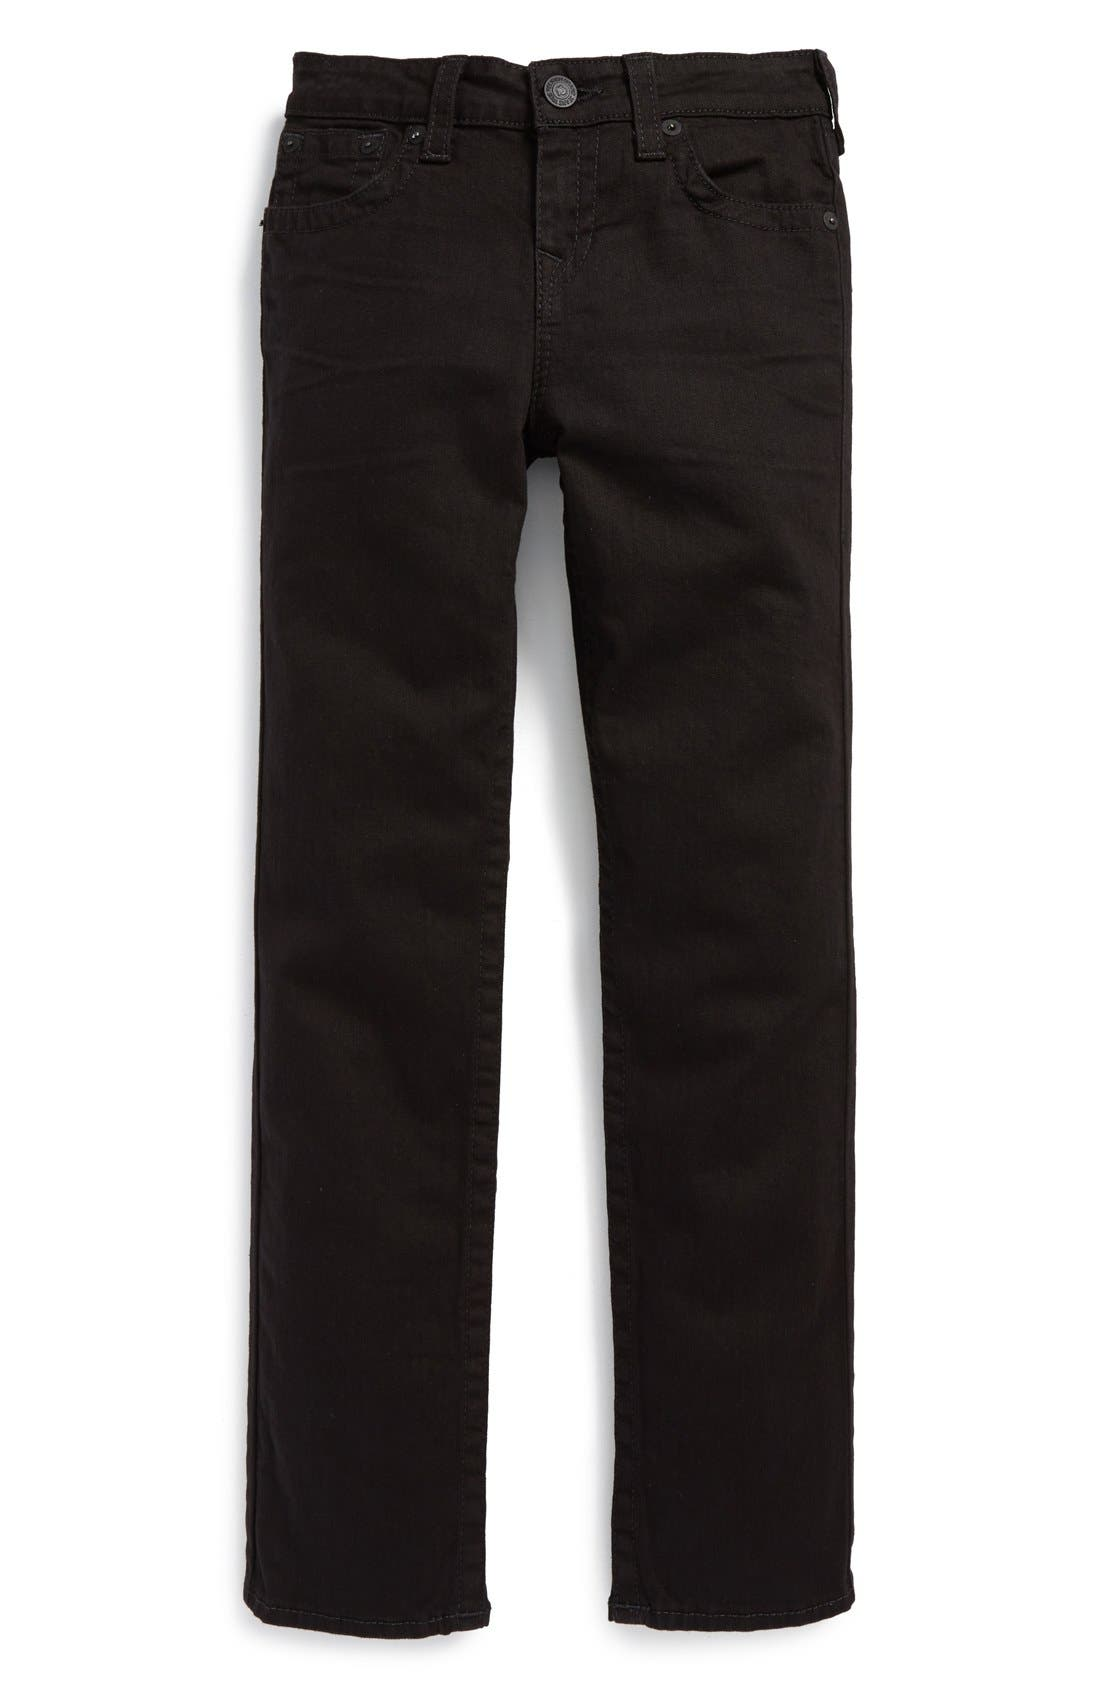 Alternate Image 1 Selected - True Religion Brand Jeans 'Geno' Relaxed Slim Fit Jeans (Big Boys)